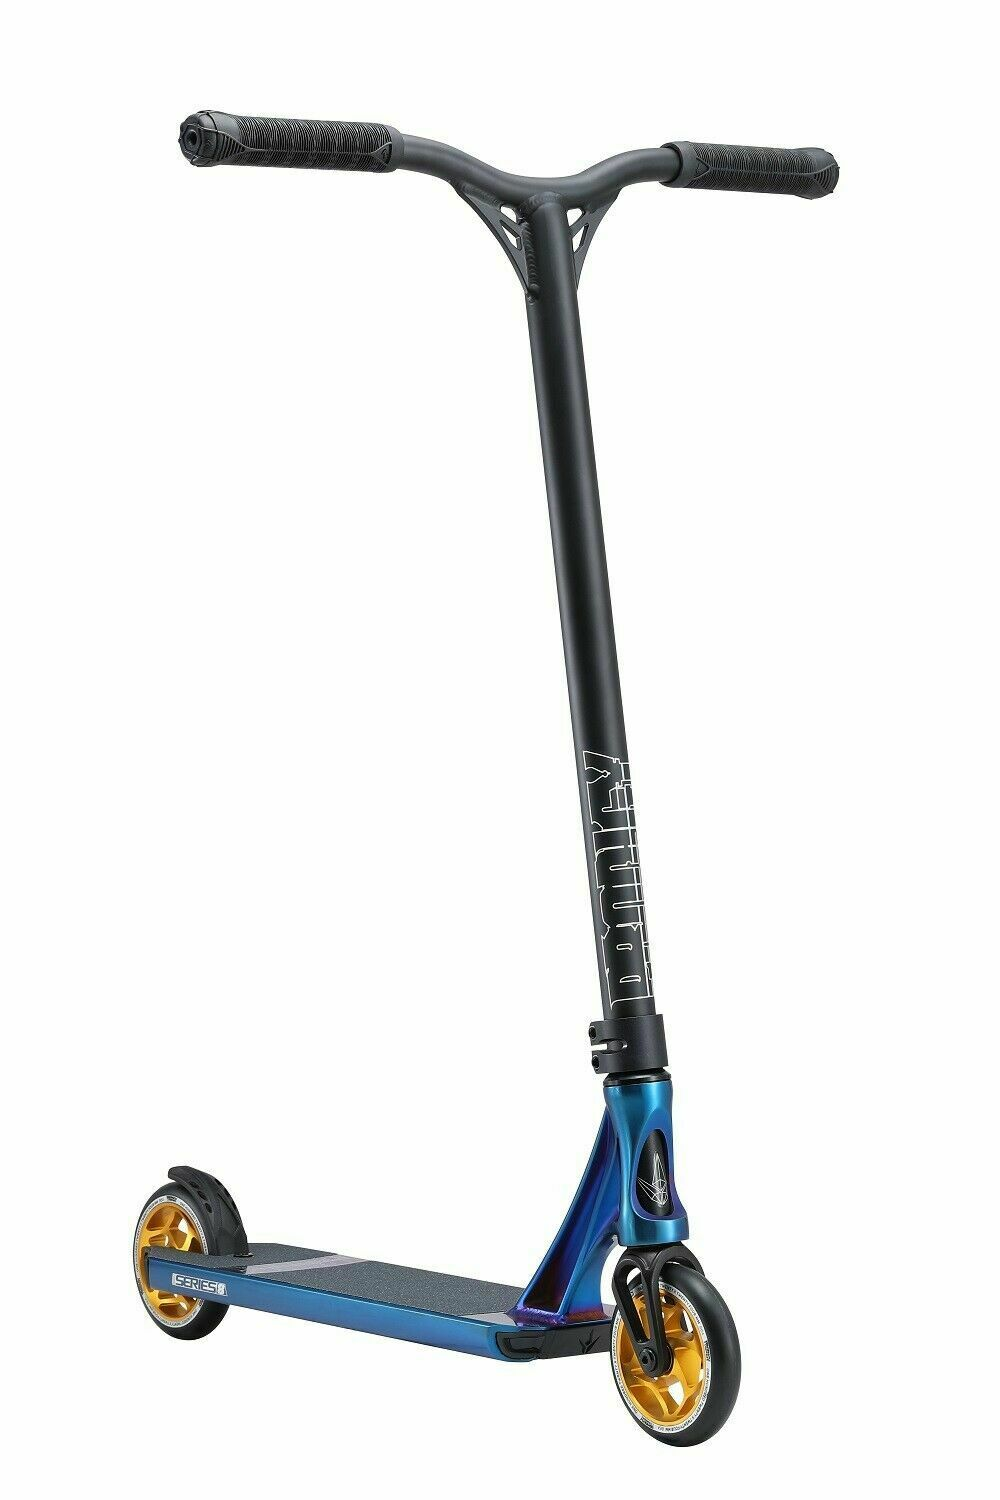 ENVY PRODIGY S8 Complete Pro scooter - BURNT PIPE